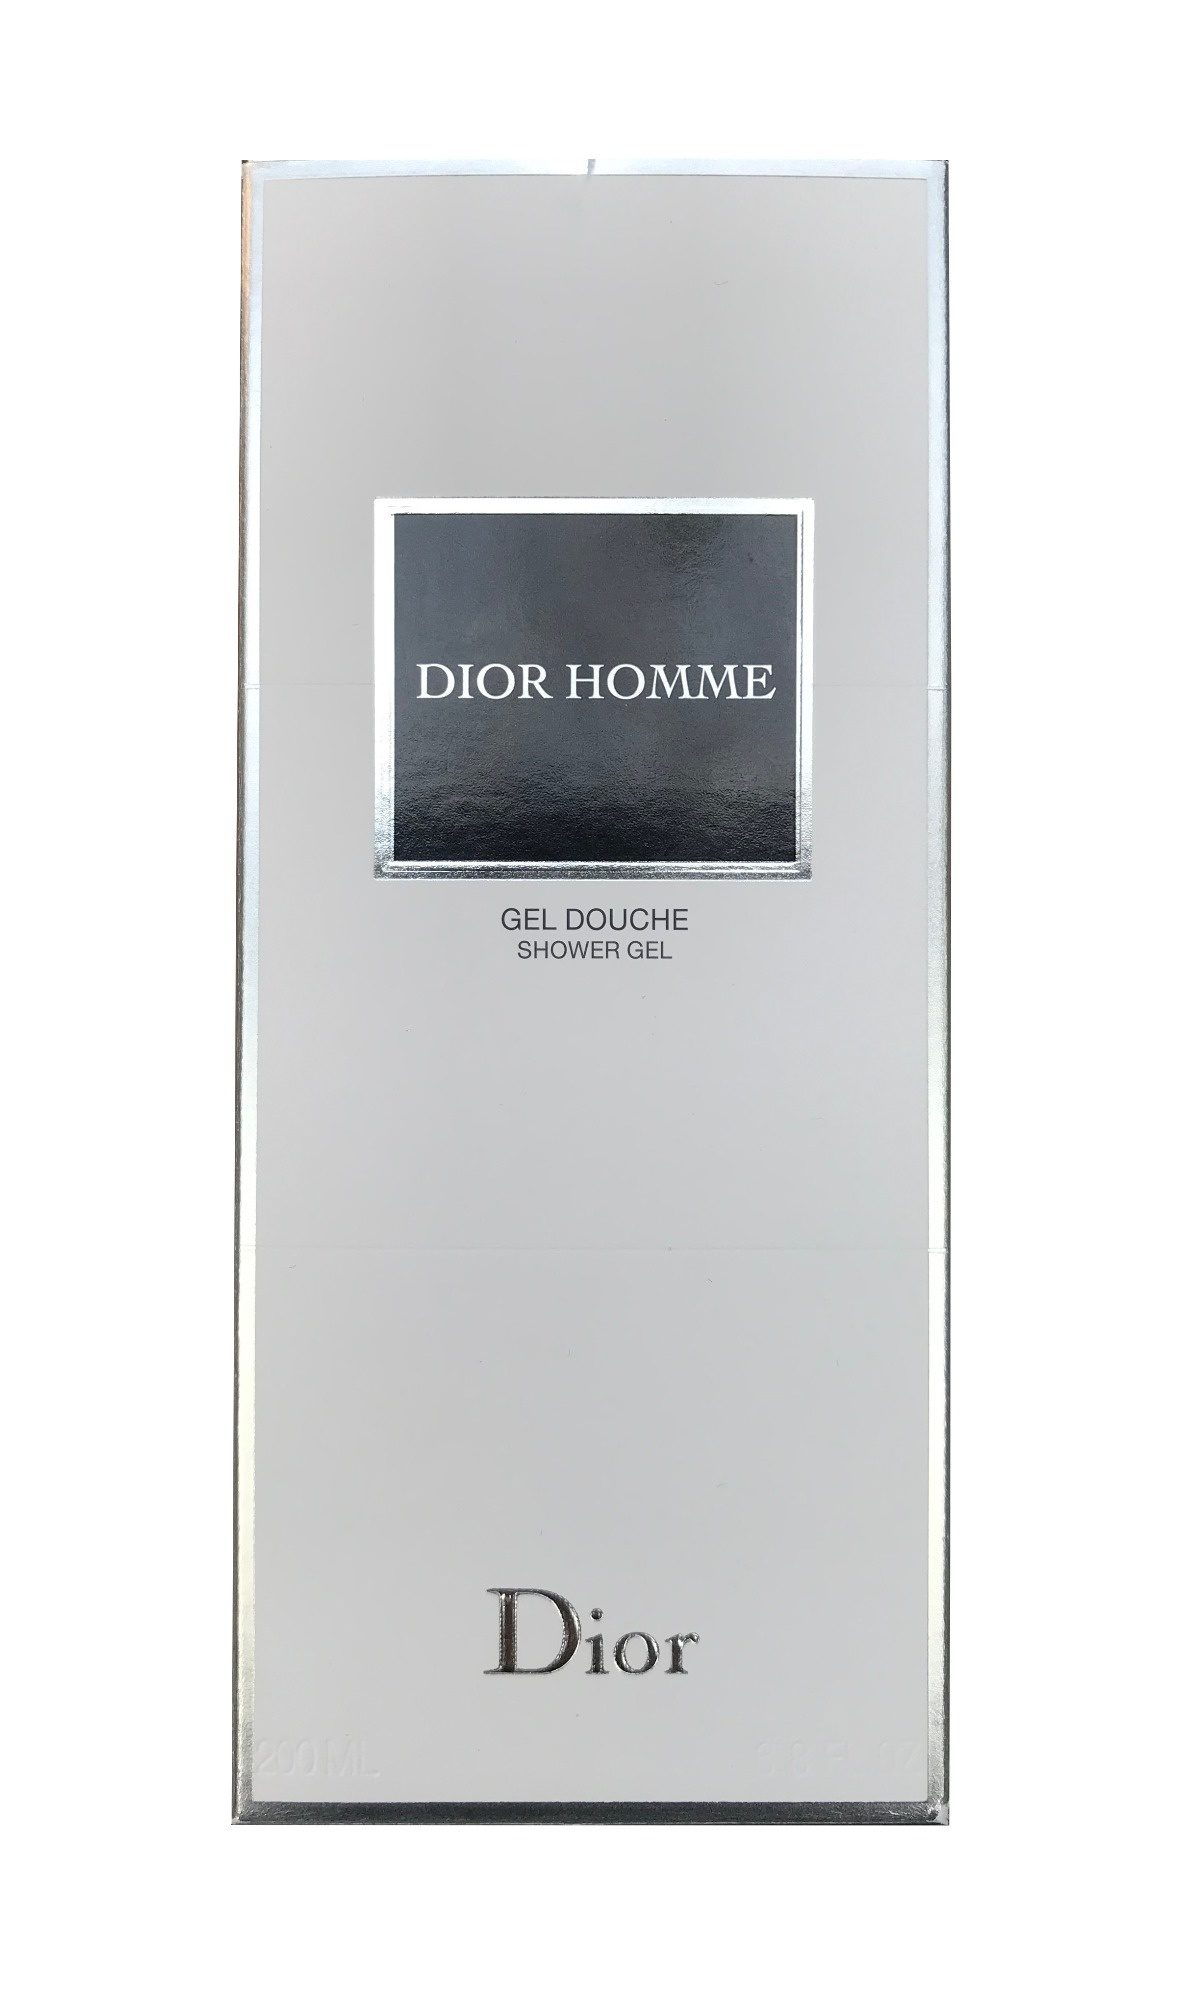 Dior Homme Gel Douche - Product